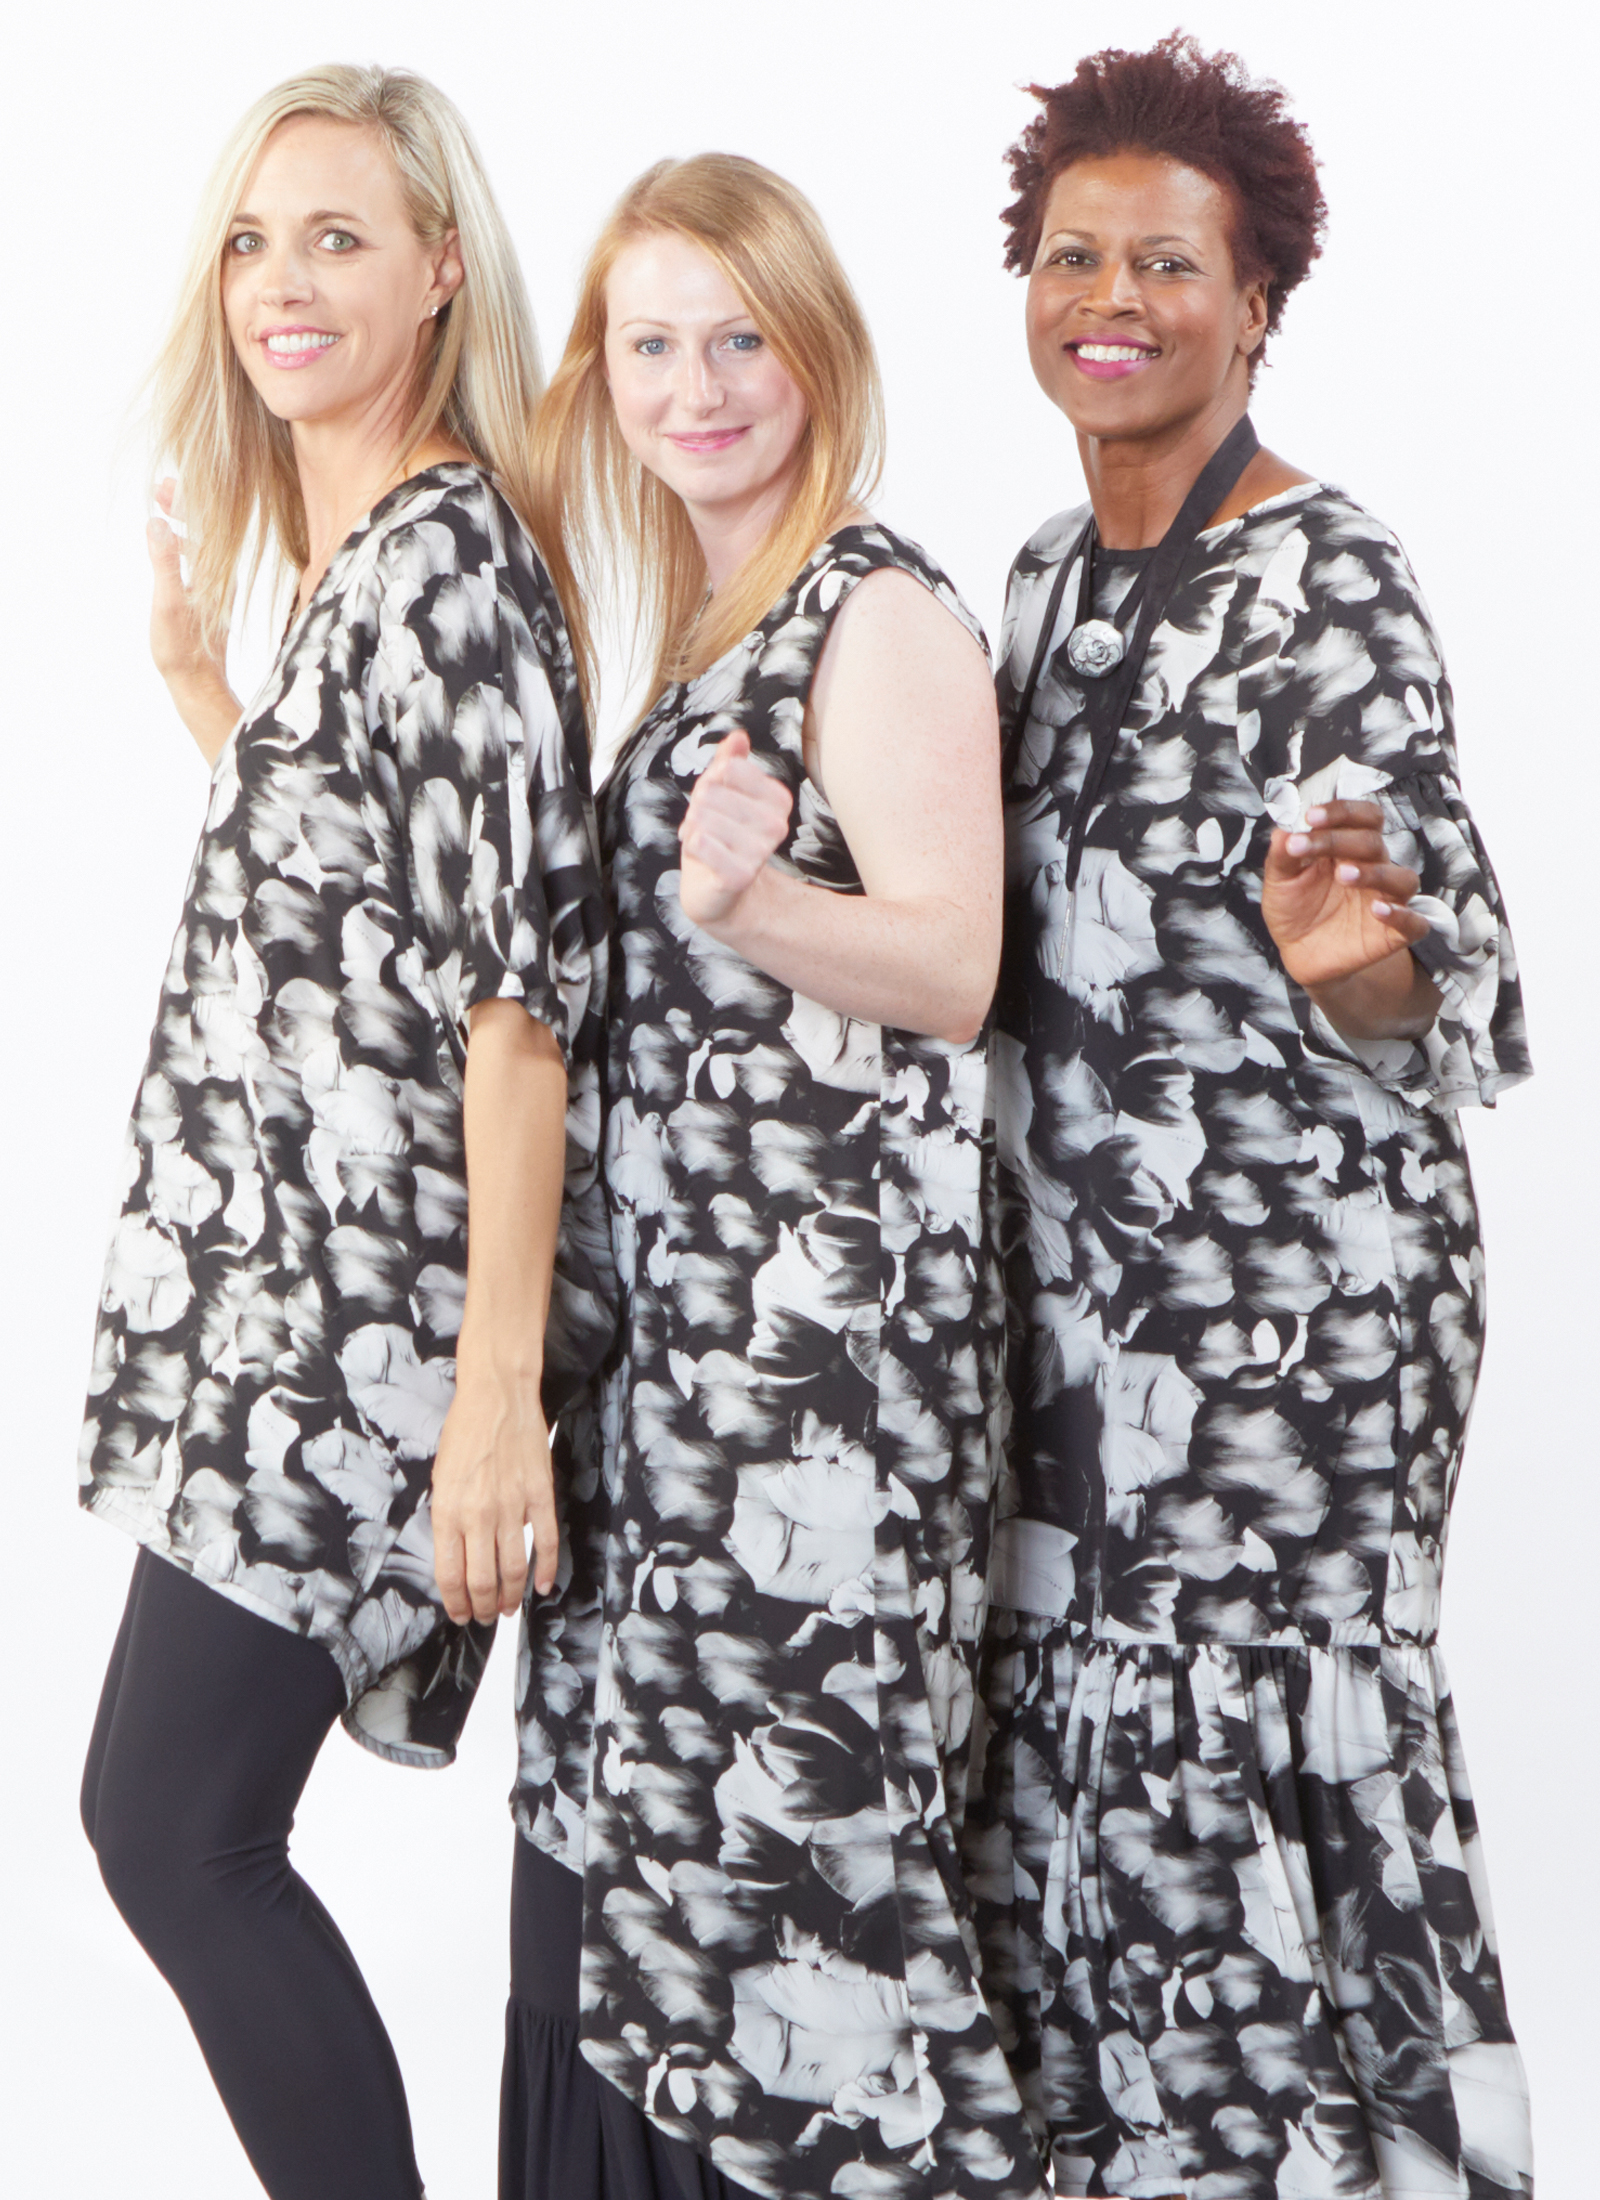 Raquel Tunic, Euna Dress, Seraphina Dress in Black Tulip Print, Legging, Ruffle Pant in Black Microfiber Jersey